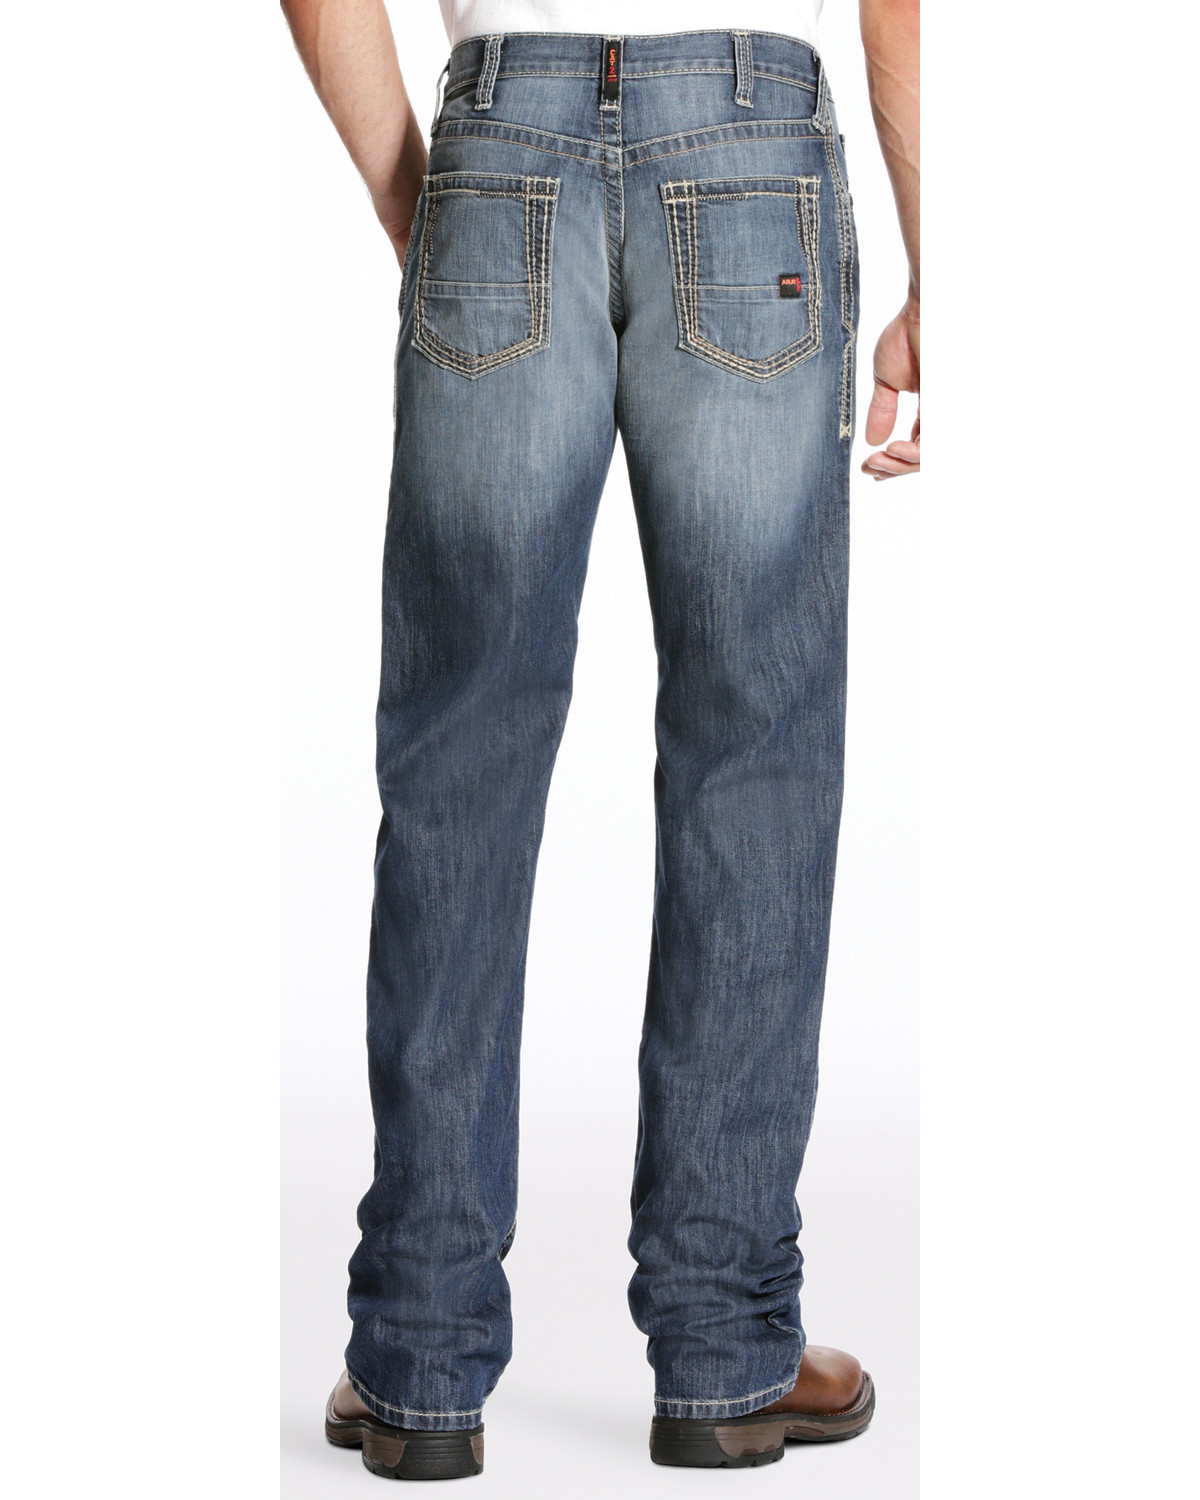 Ariat Men's FR M4 Inherent Boundary Low Rise Jeans - Boot Cut